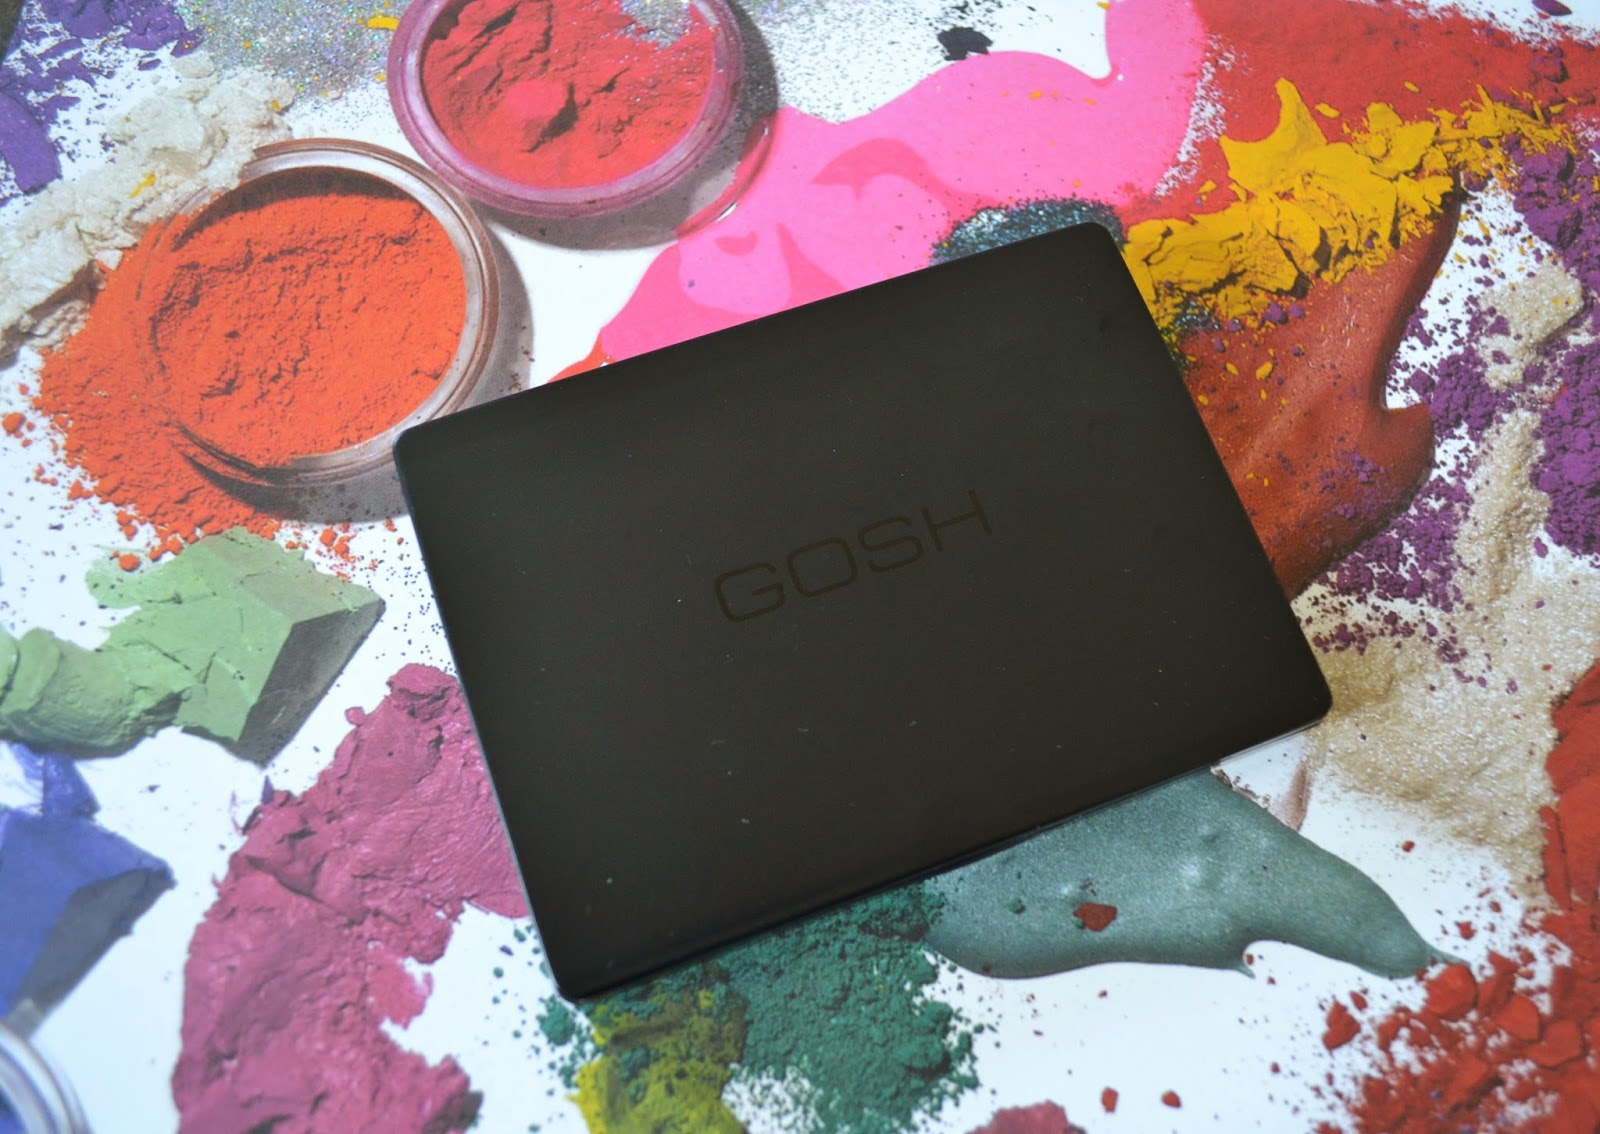 GOSH 9 Shades Eye Shadow Palette To Enjoy In New York - Aspiring Londoner